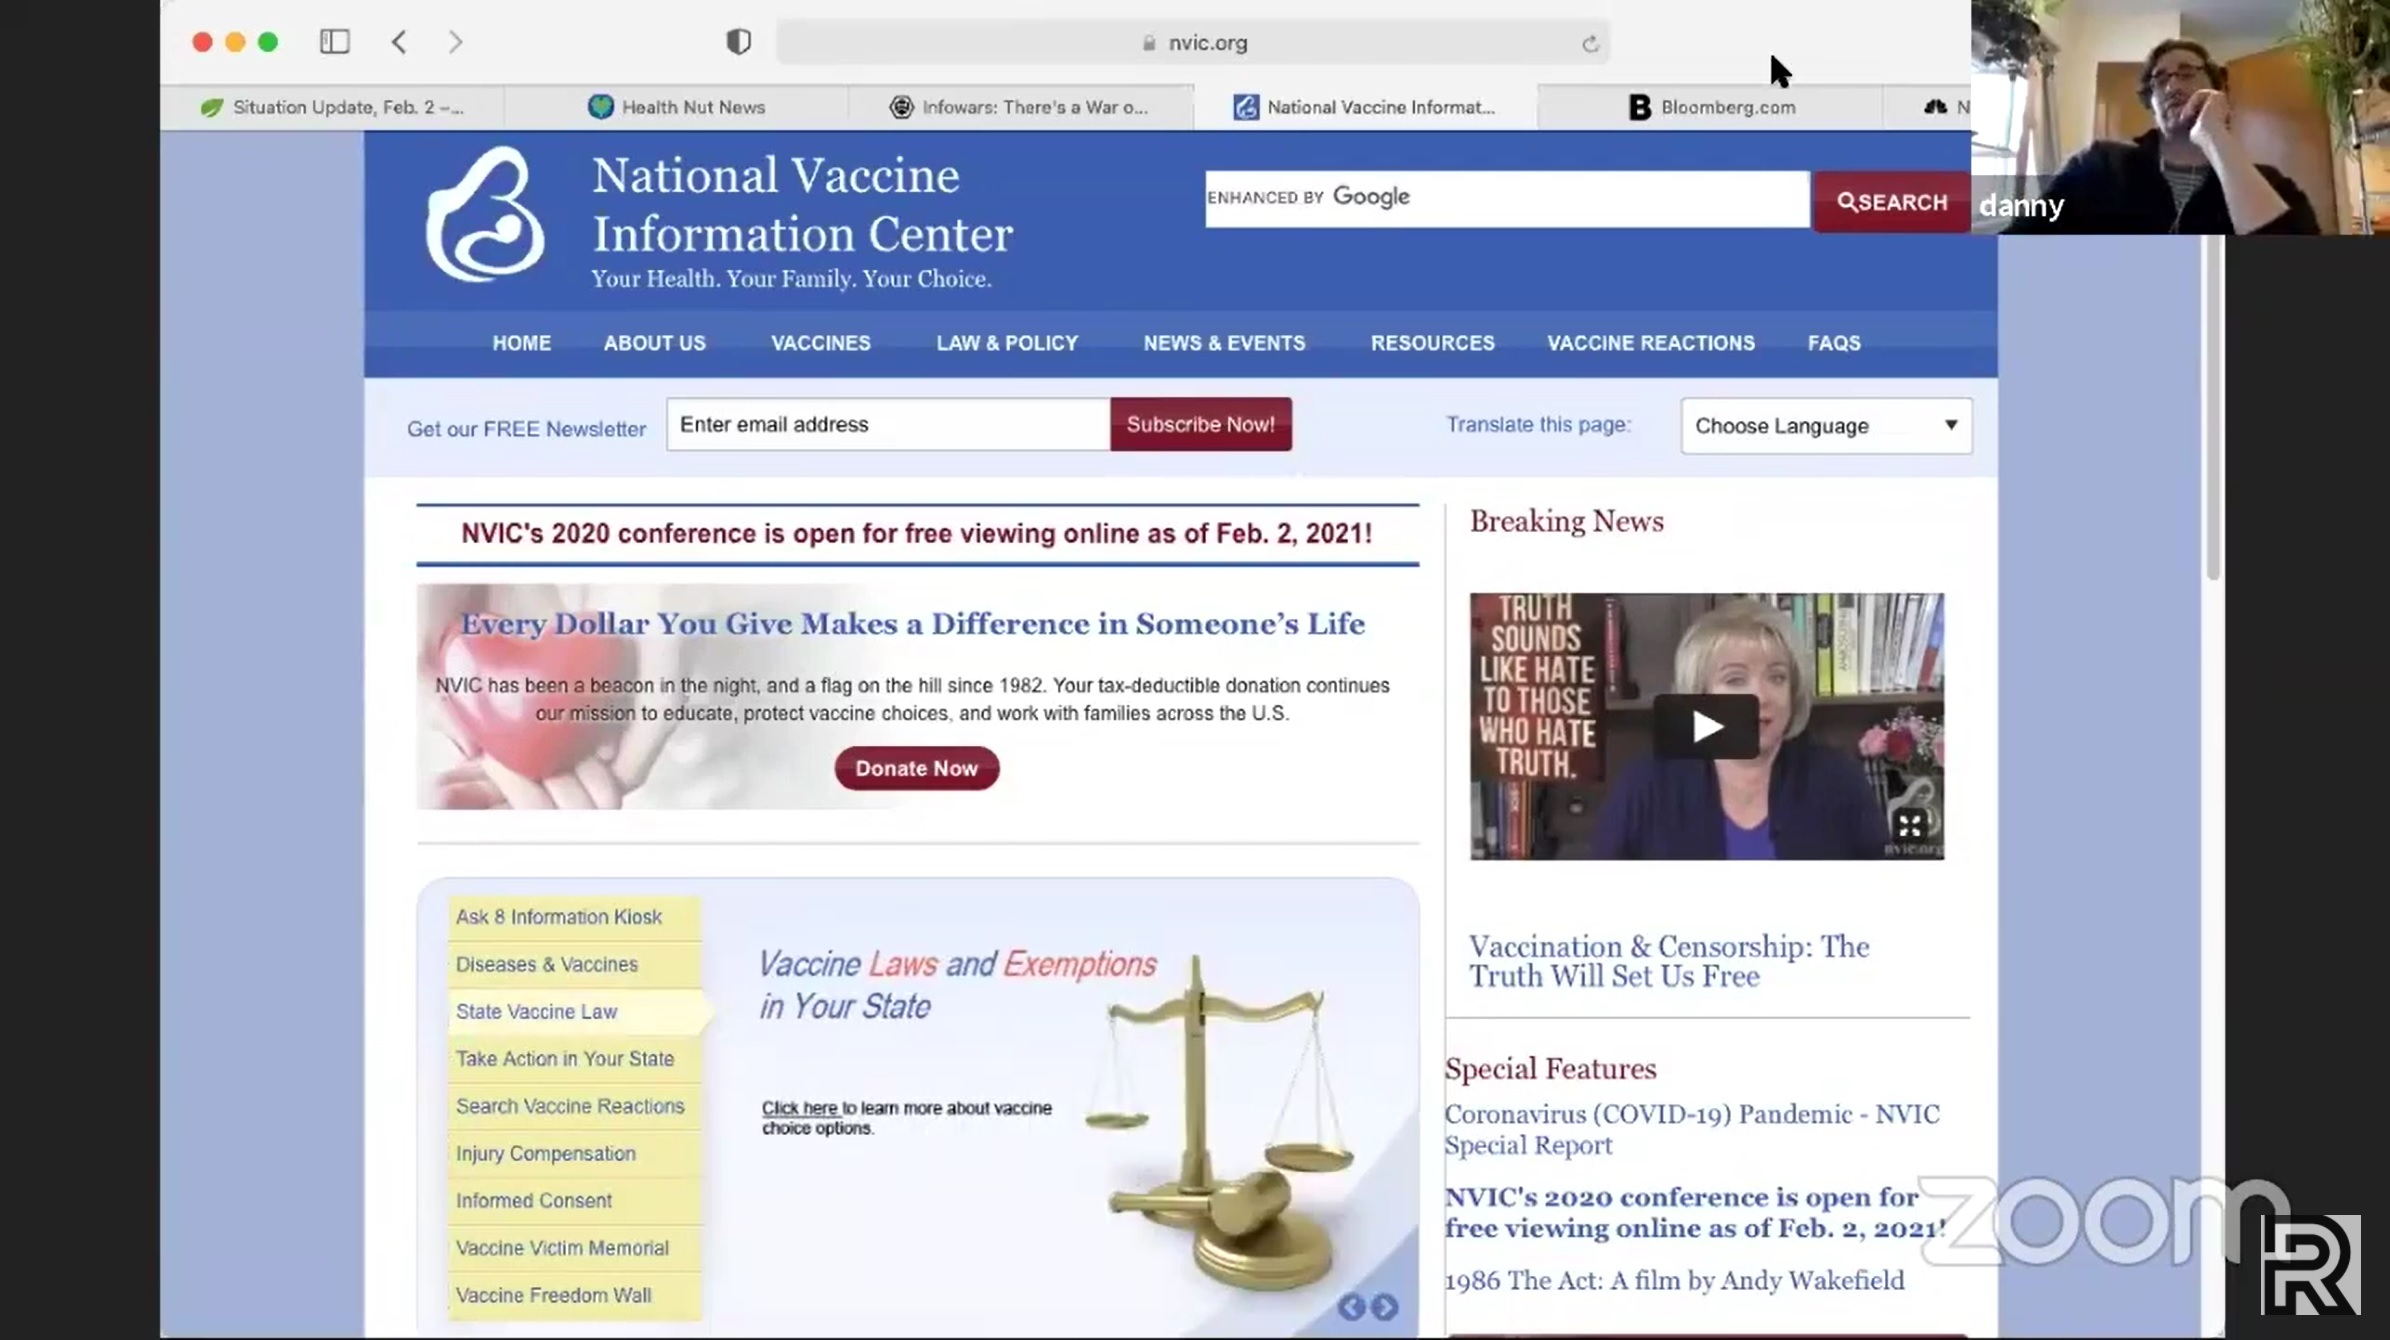 A screenshot of the National Vaccine Information Center homepage.